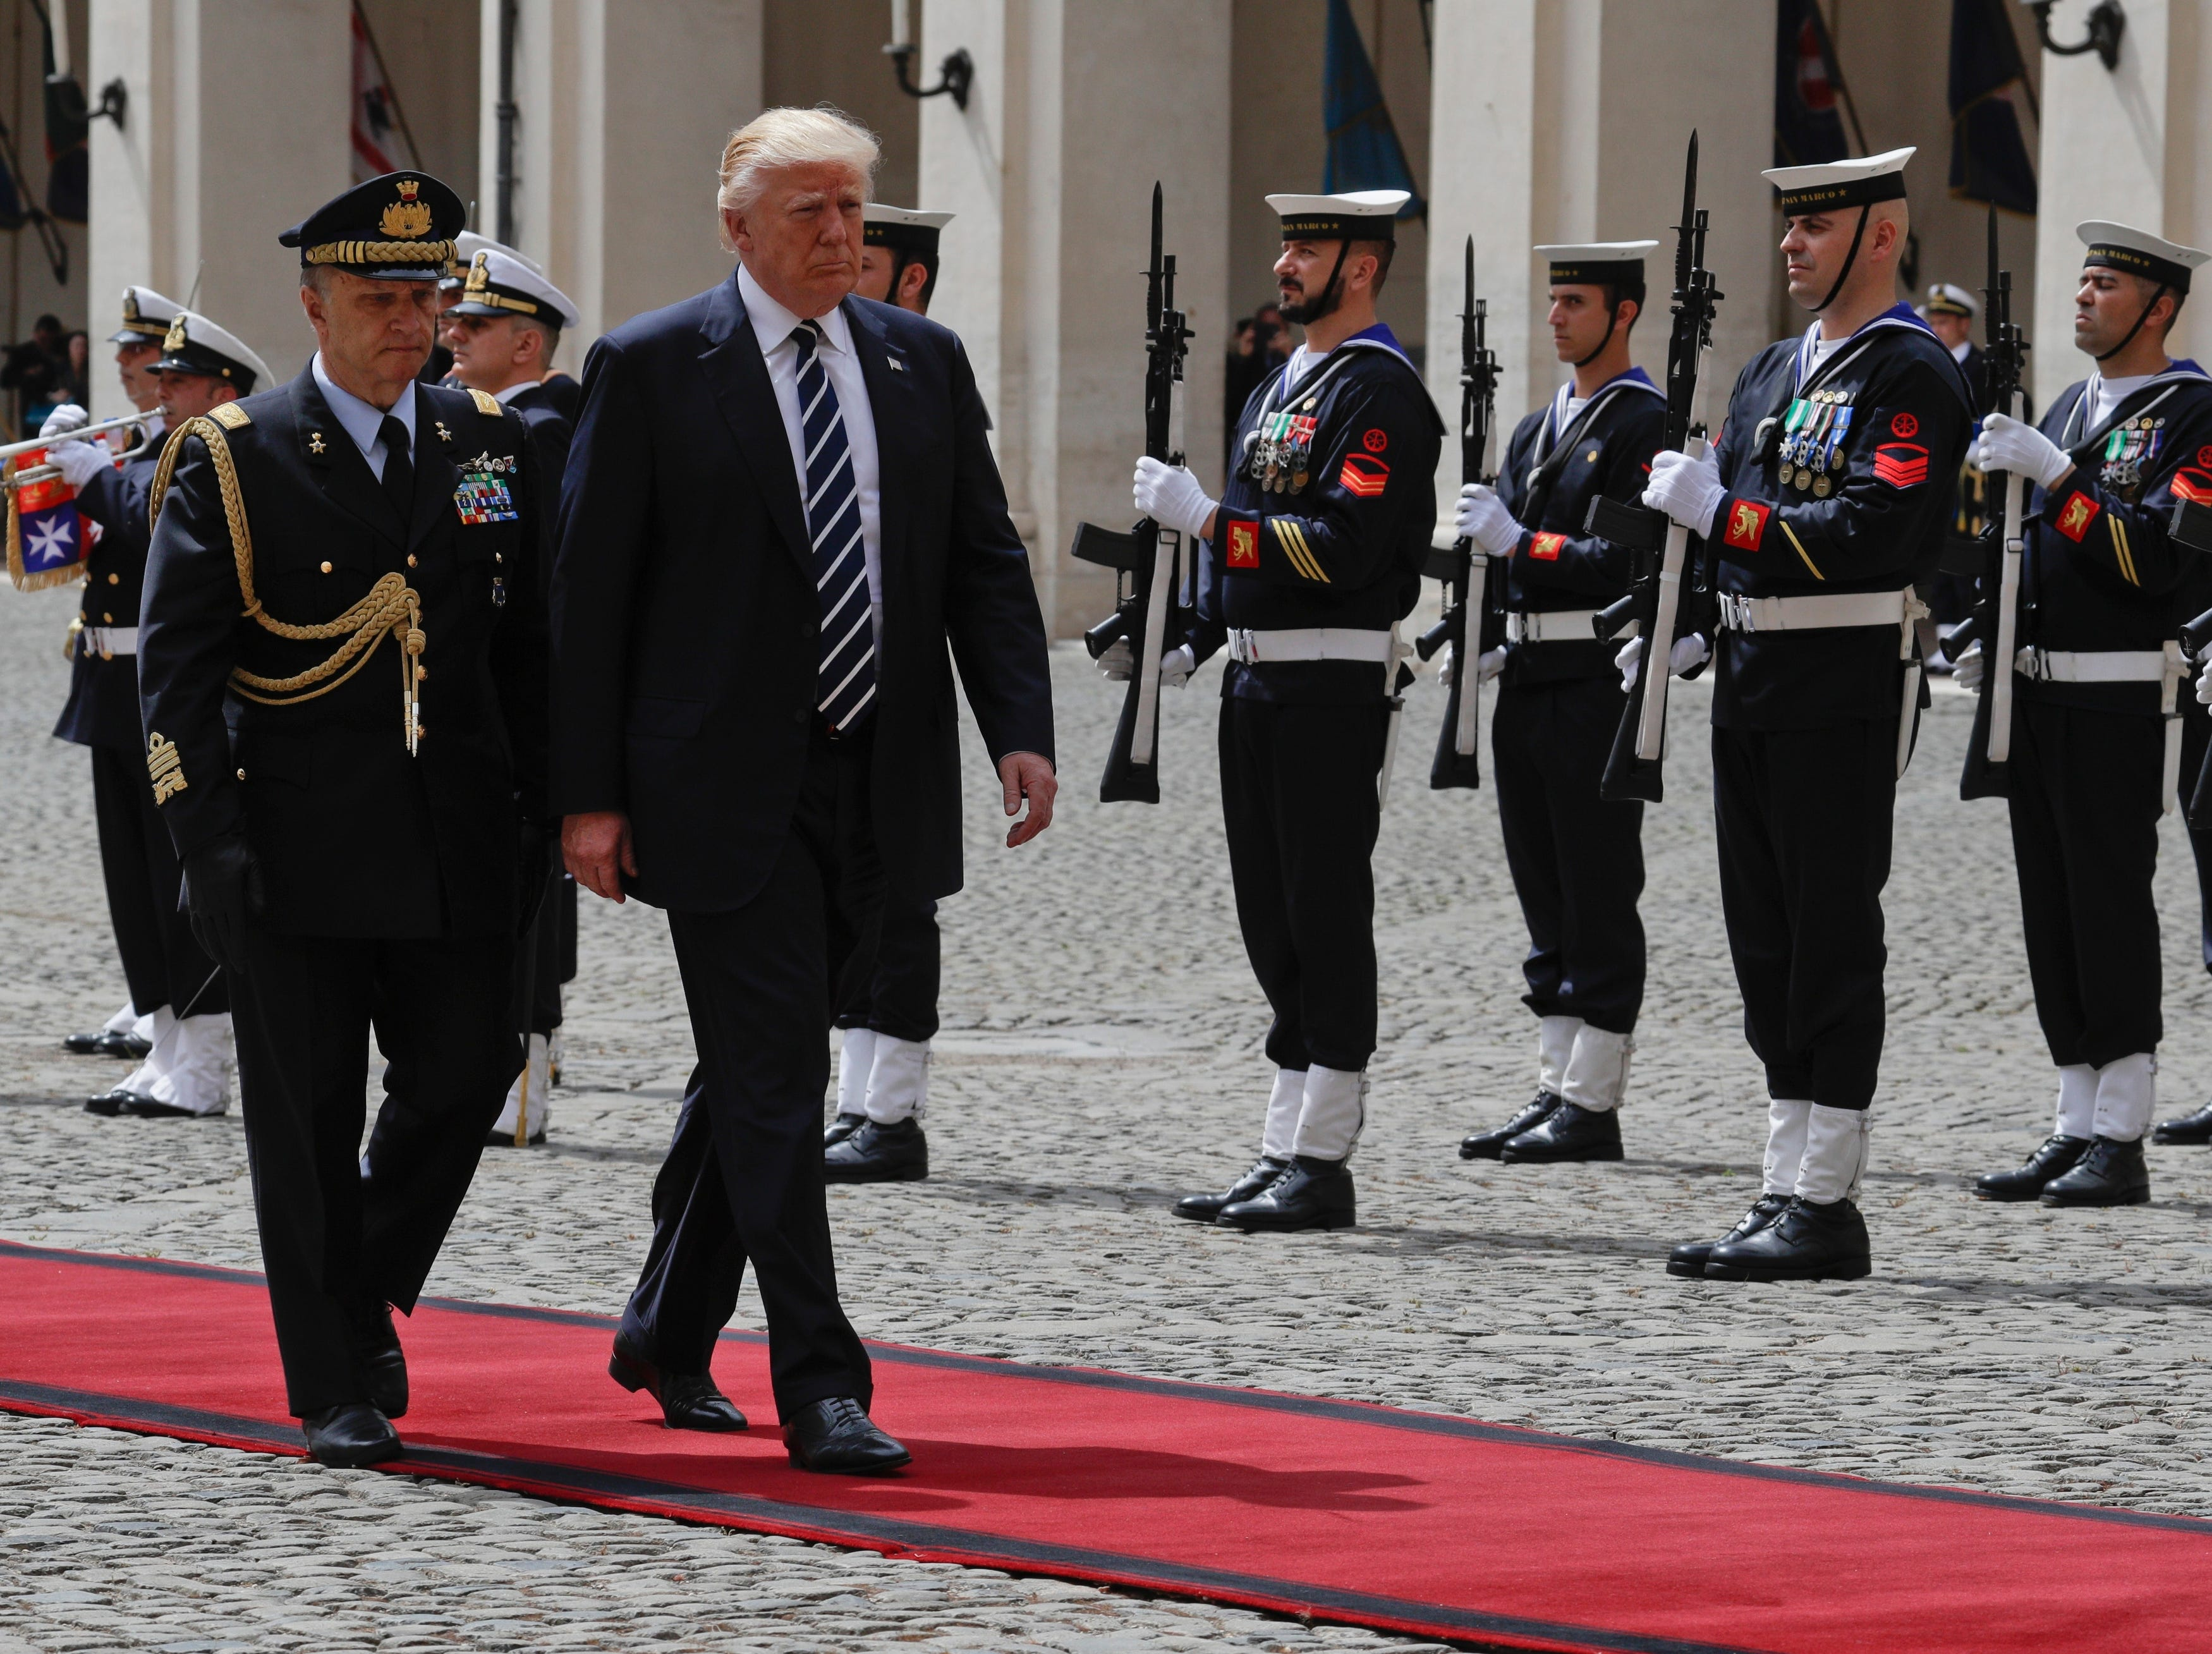 President Trump and Italian Military Advisor Gen. Roberto Corsini review the honor guard at the Quirinale Presidential palace prior to his meeting with Italian President Sergio Mattarella, in Rome on May 24, 2017.